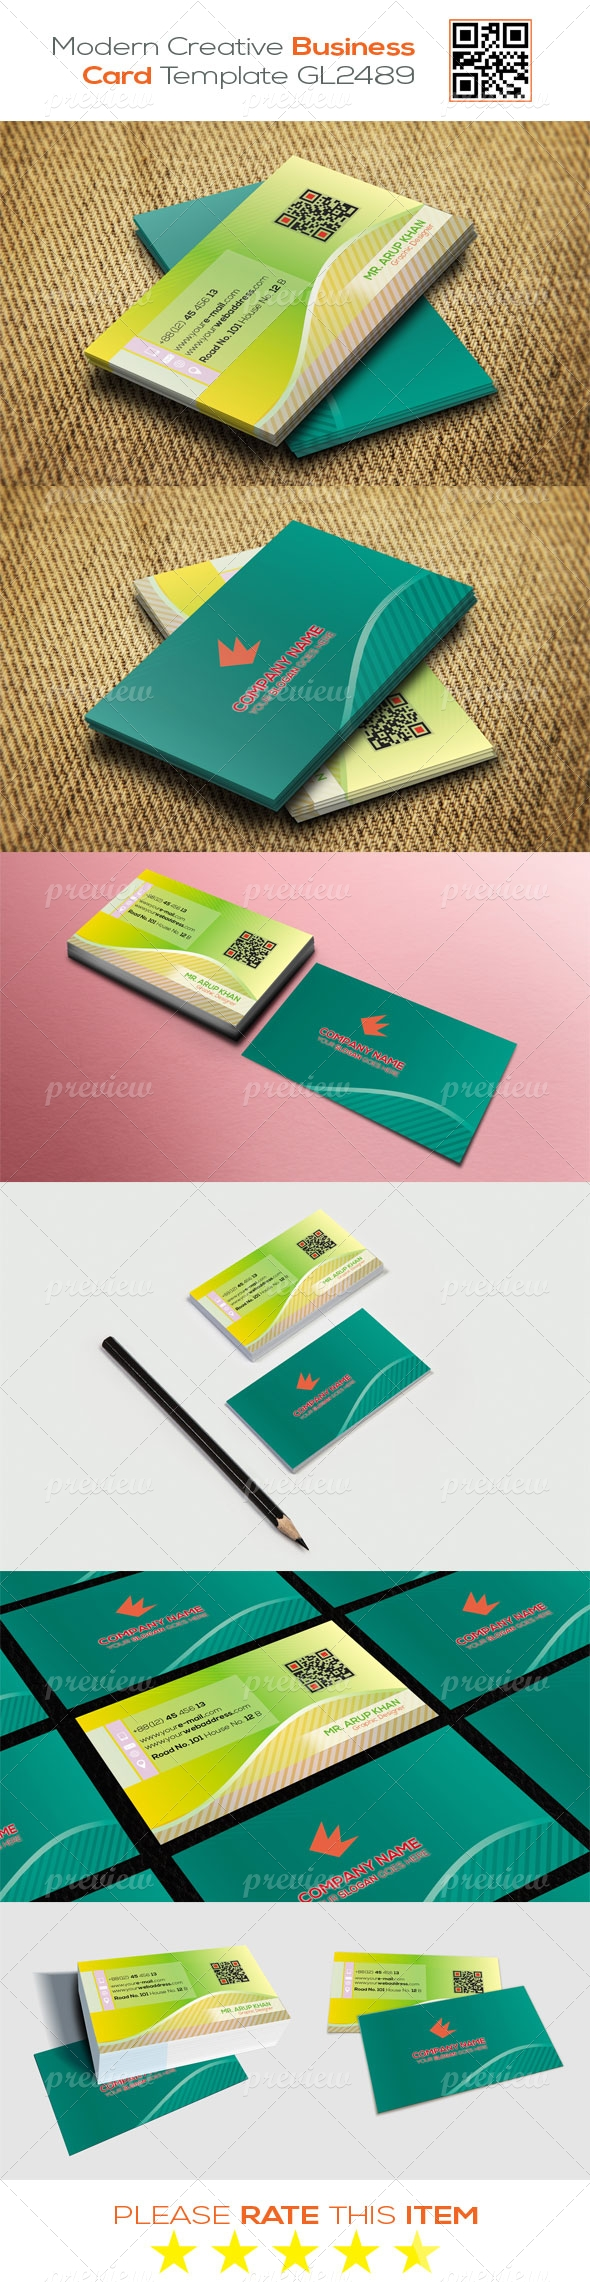 Modern Creative Business Card Template GL2489